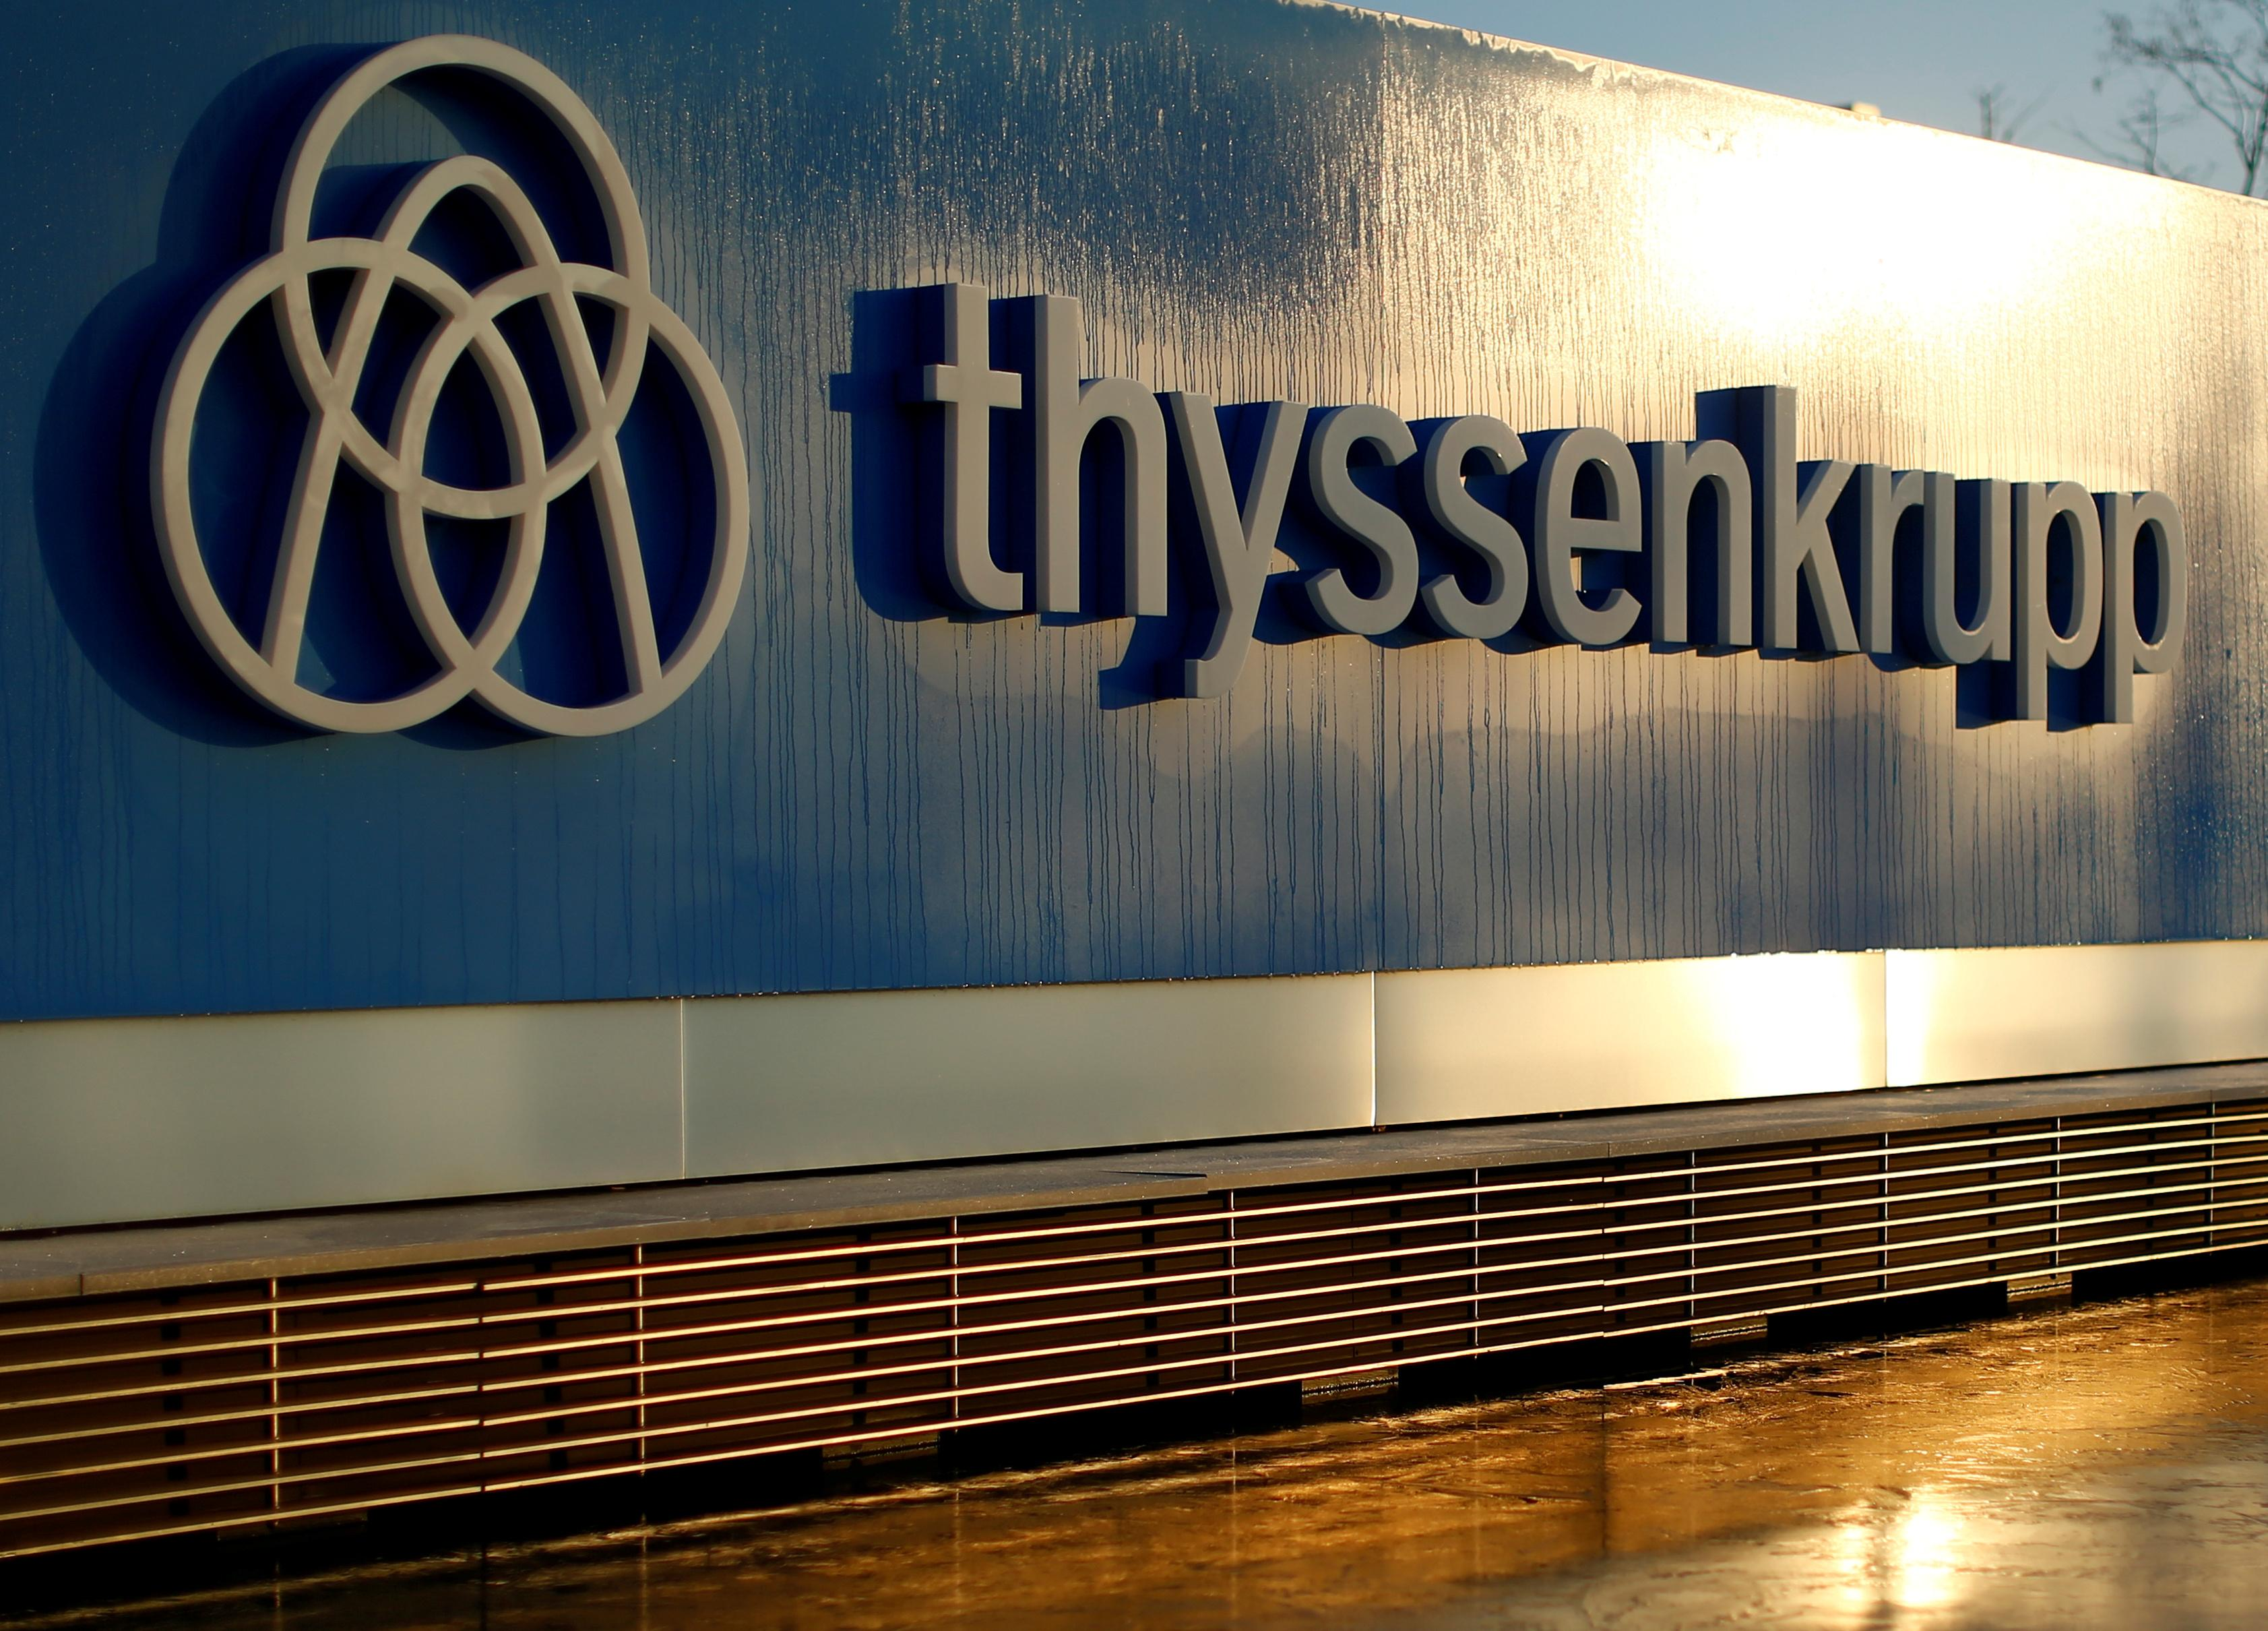 Thyssenkrupp to leave Germany's blue chip index DAX, MTU